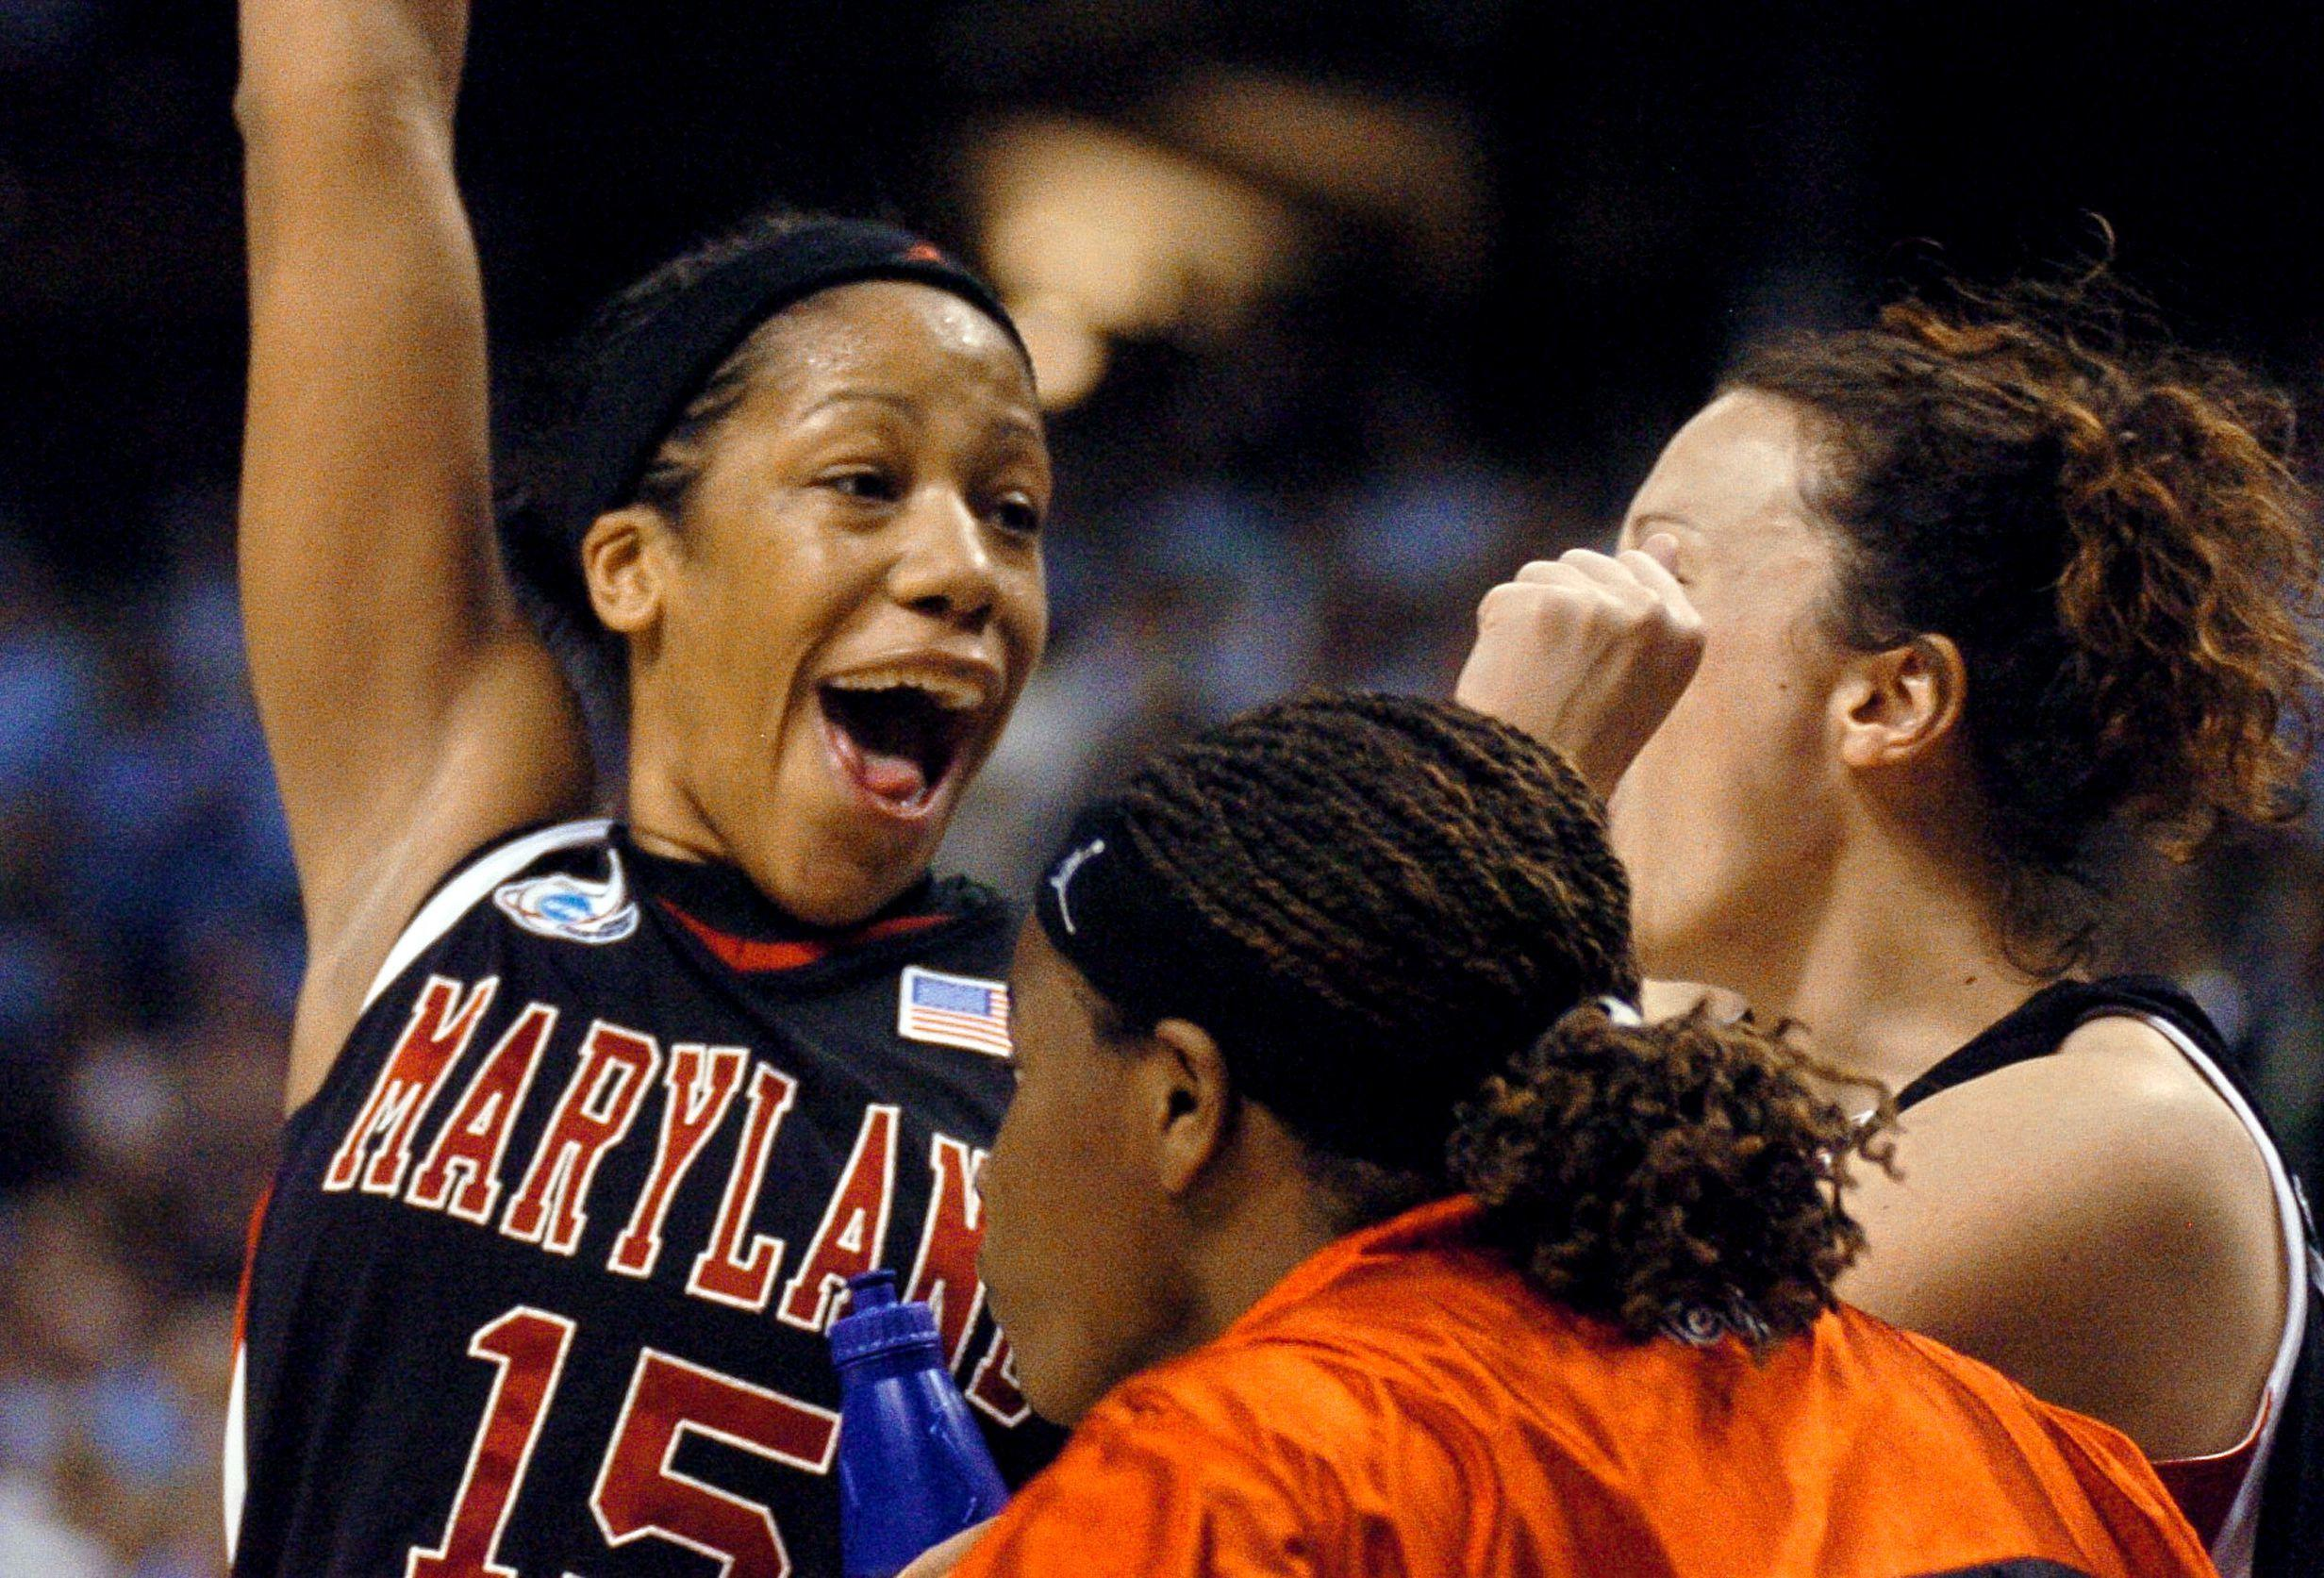 Coppin State hires former Maryland star and WNBA player Laura Harper as women's basketball coach